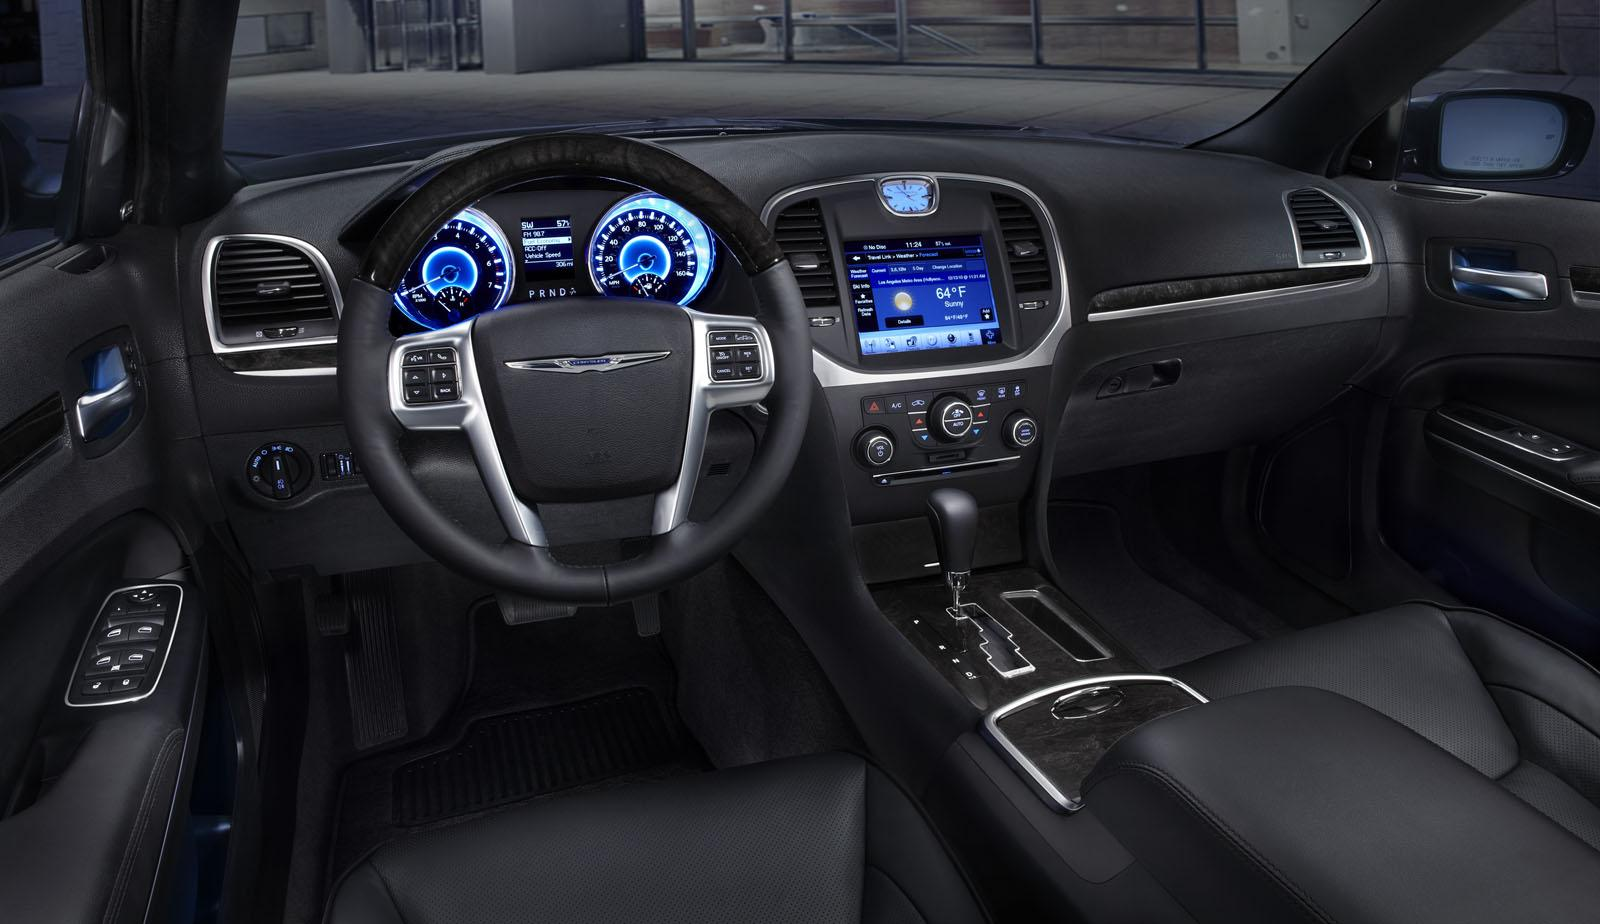 2011 Chrysler 300 interior